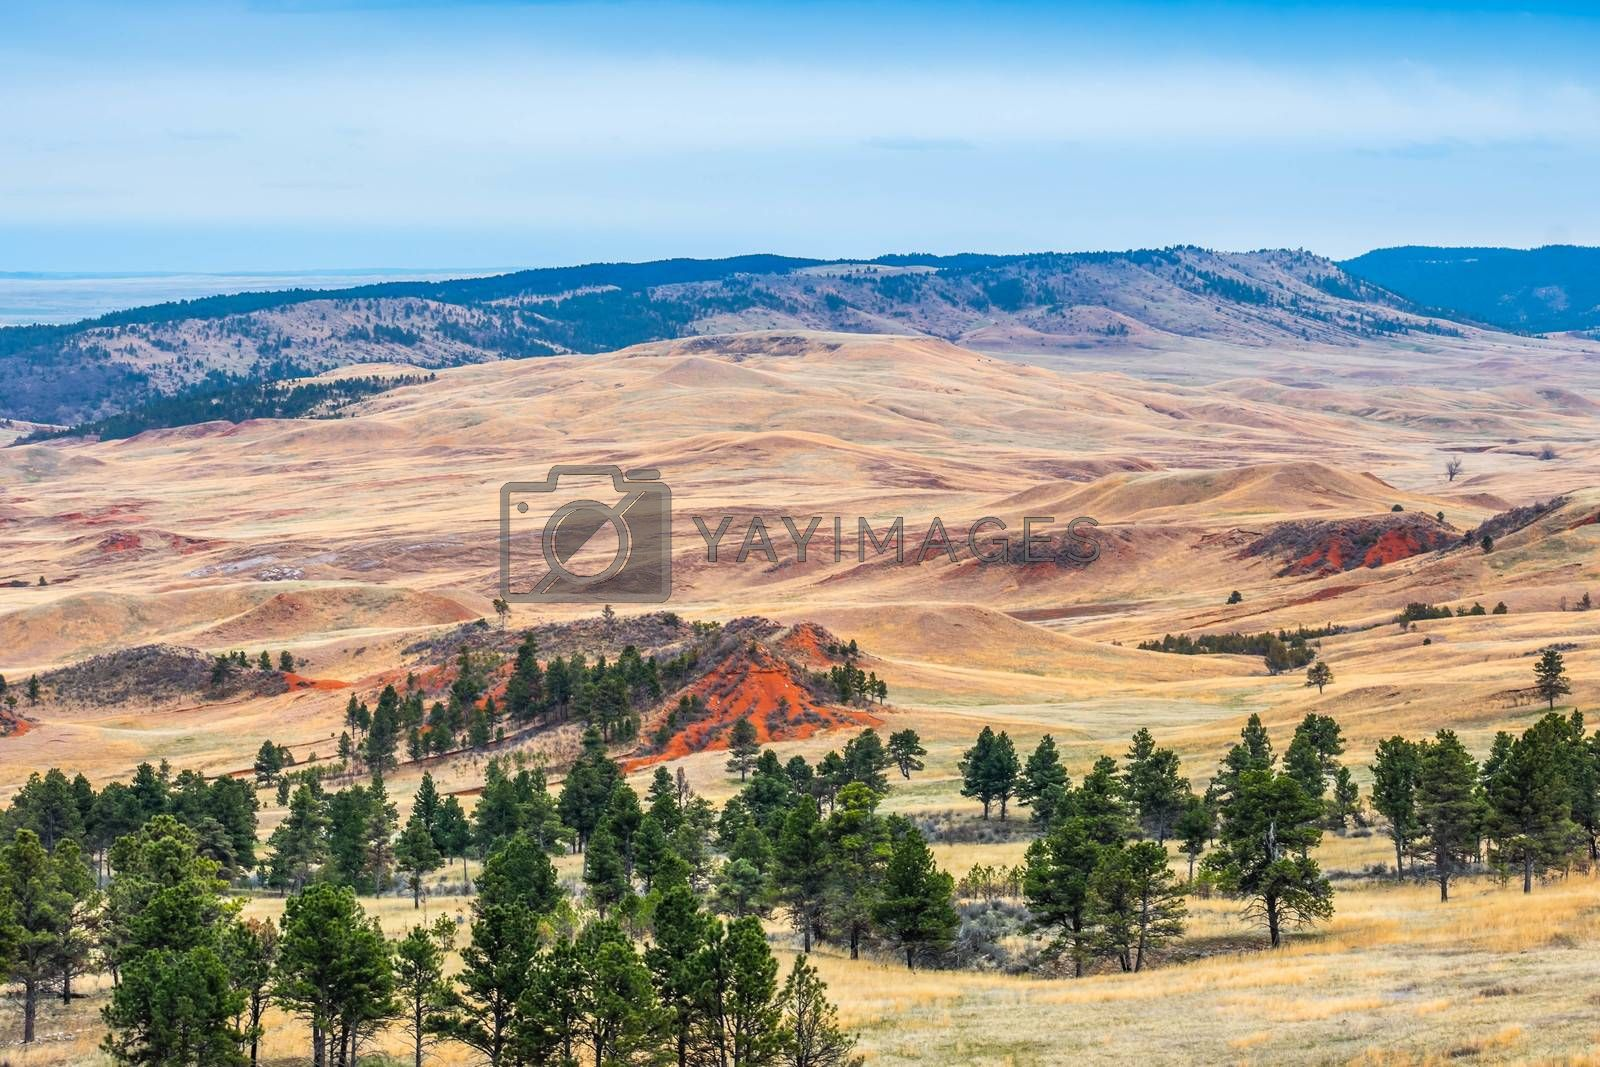 Epic landscape scenery from the walking trail of the national park